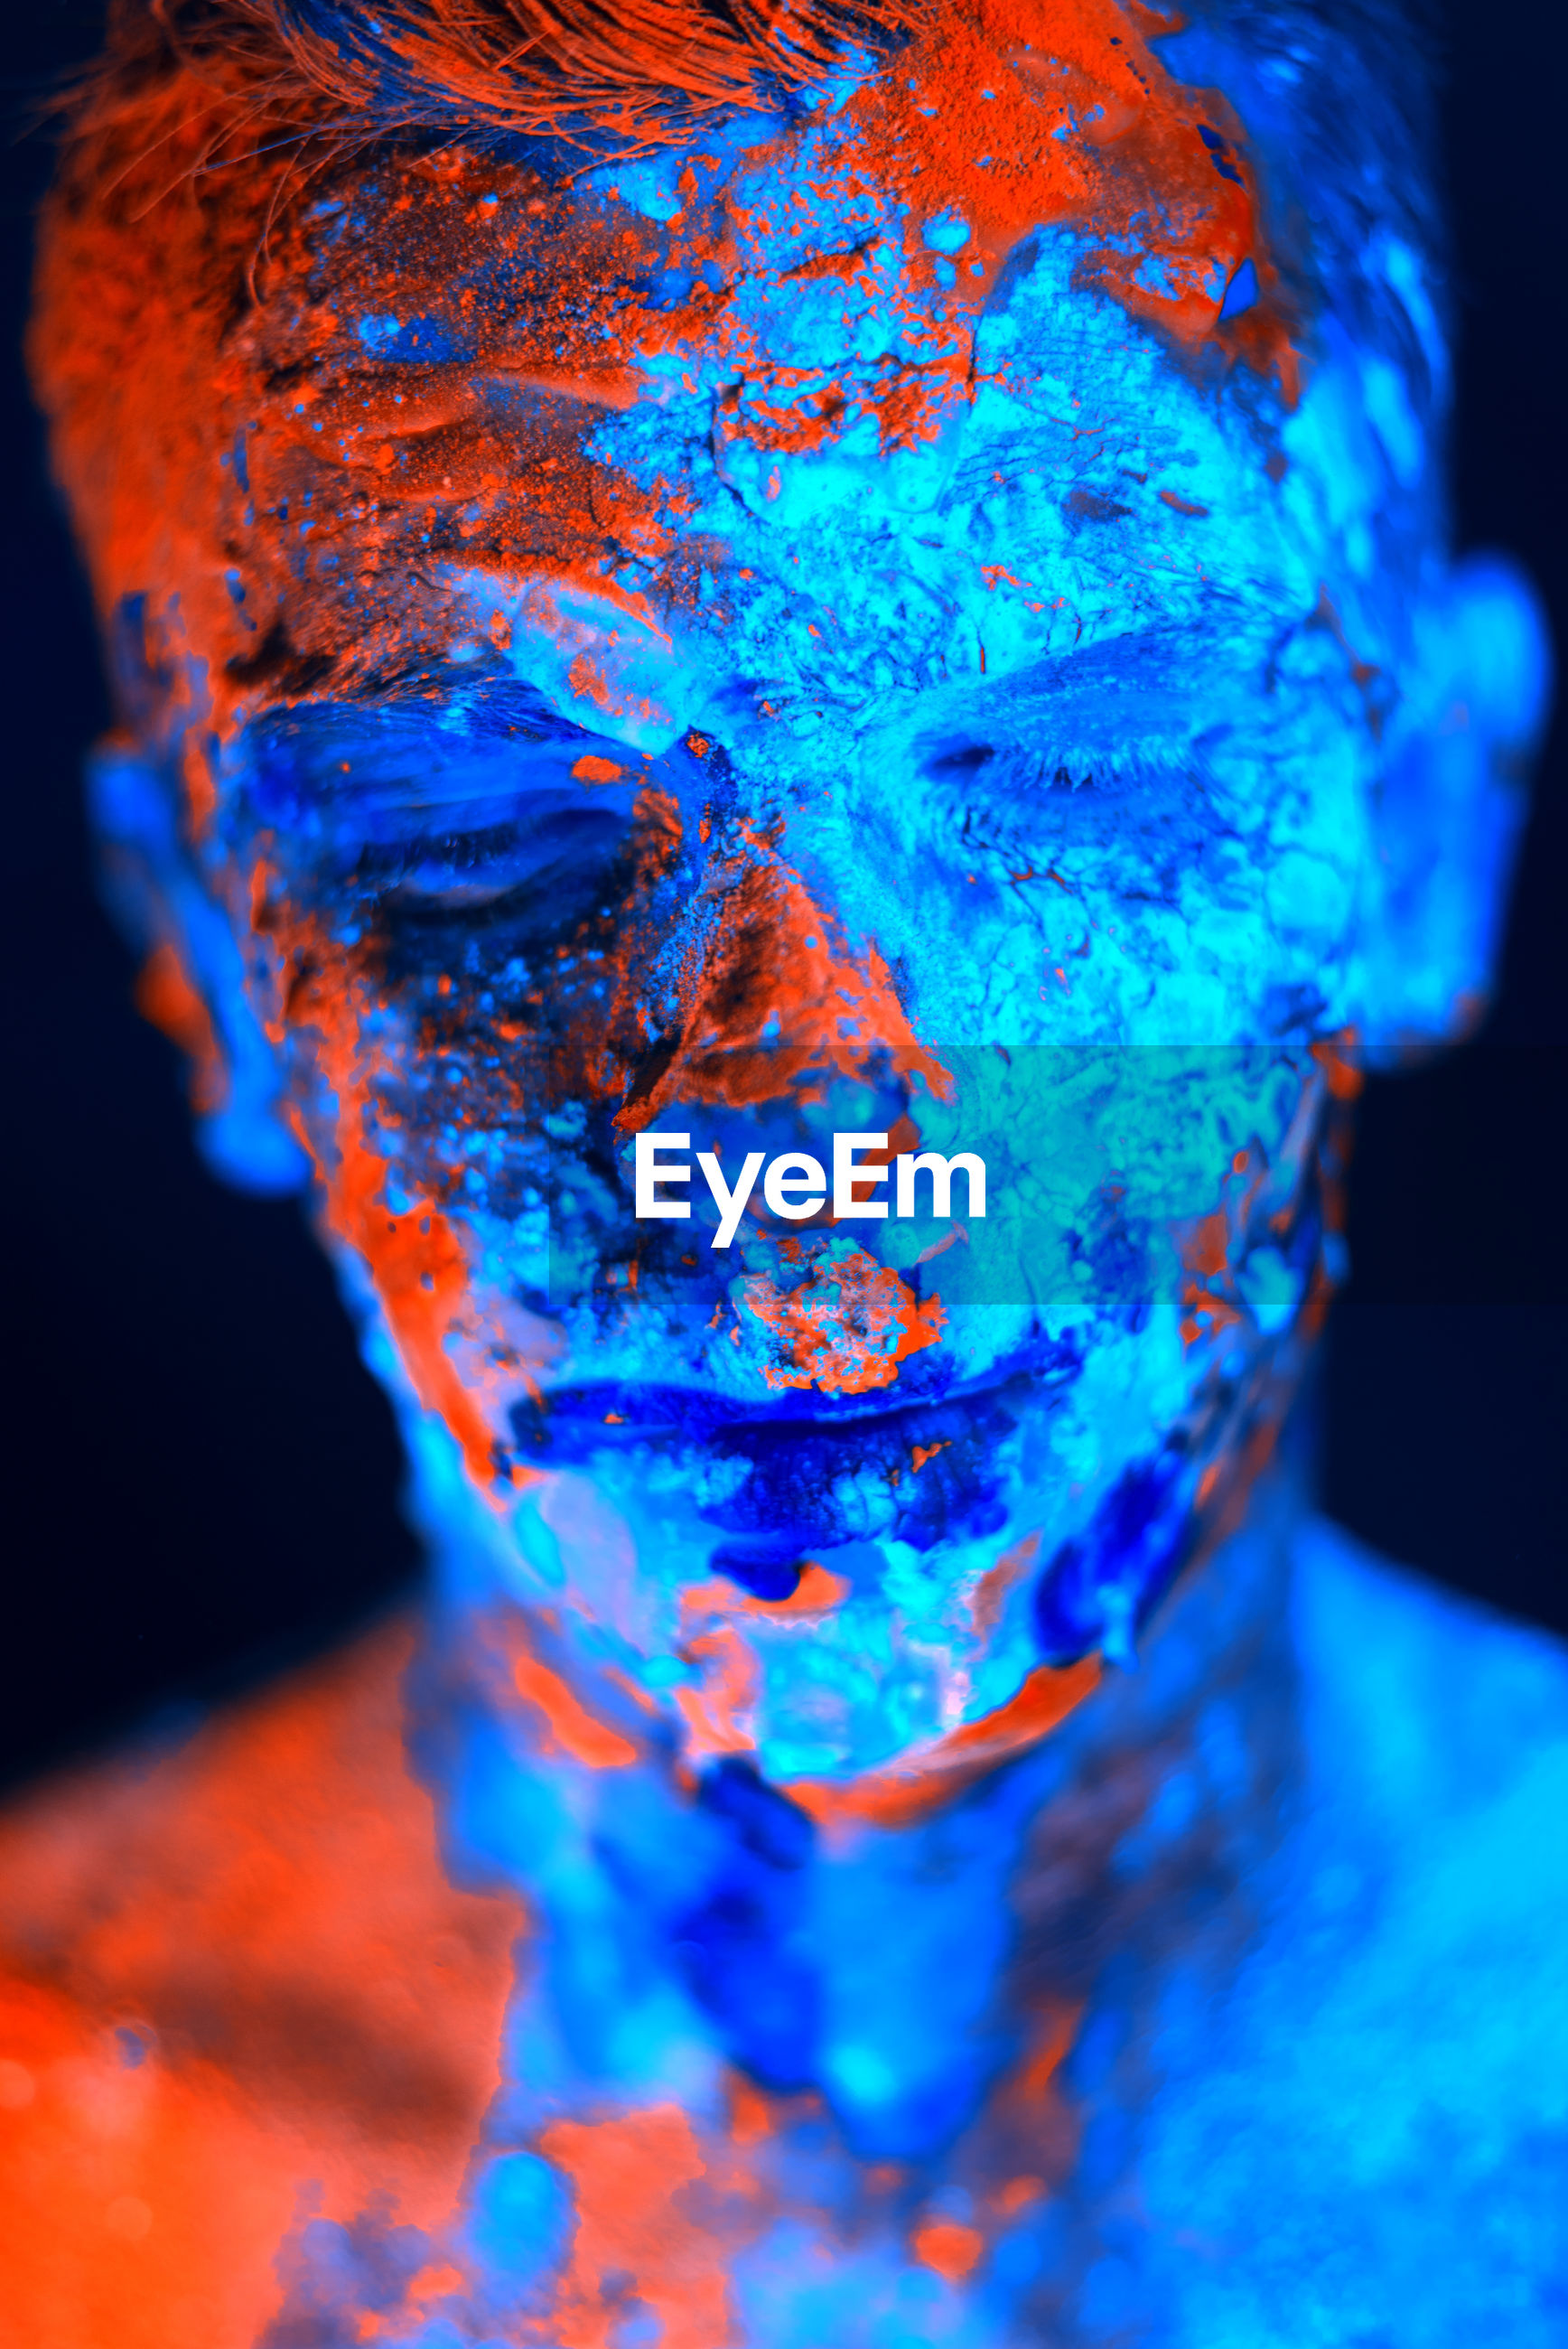 Digital composite image of man with face paint